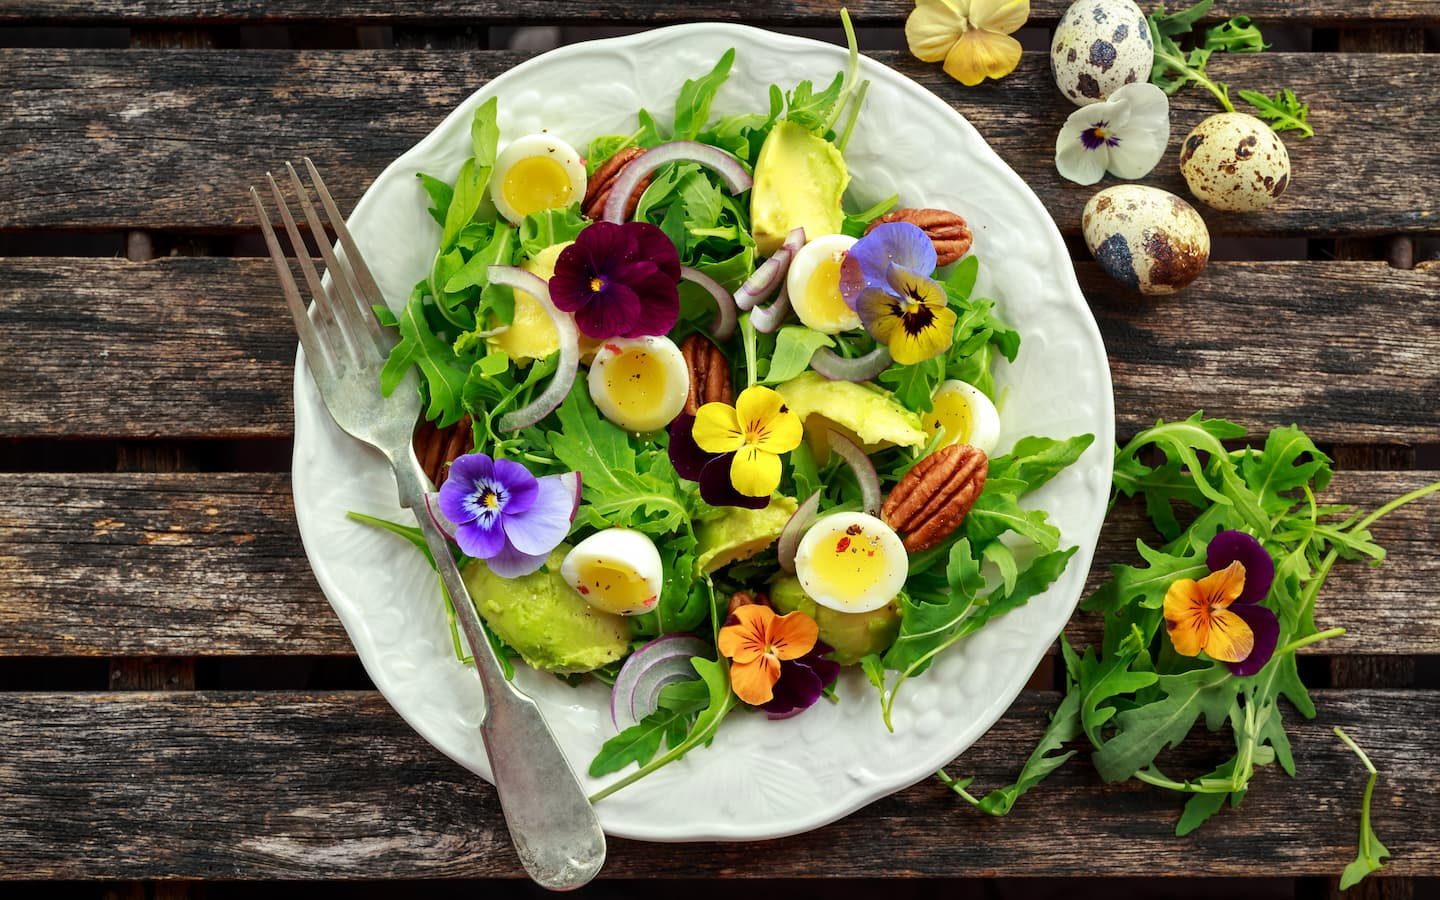 plate of salad and flowers